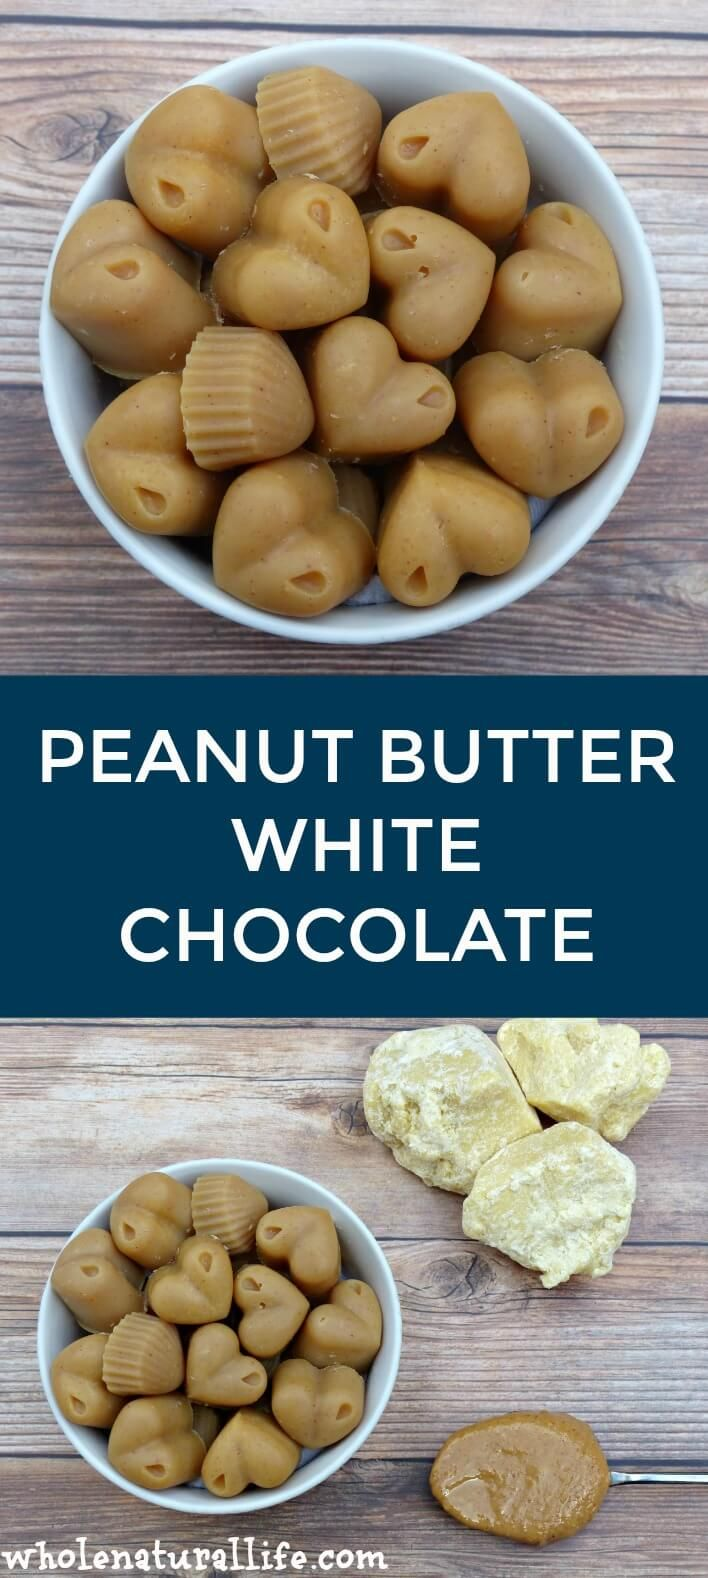 Homemade peanut butter white chocolate | White chocolate recipe | Cocoa butter recipes | Cocoa butter chocolate